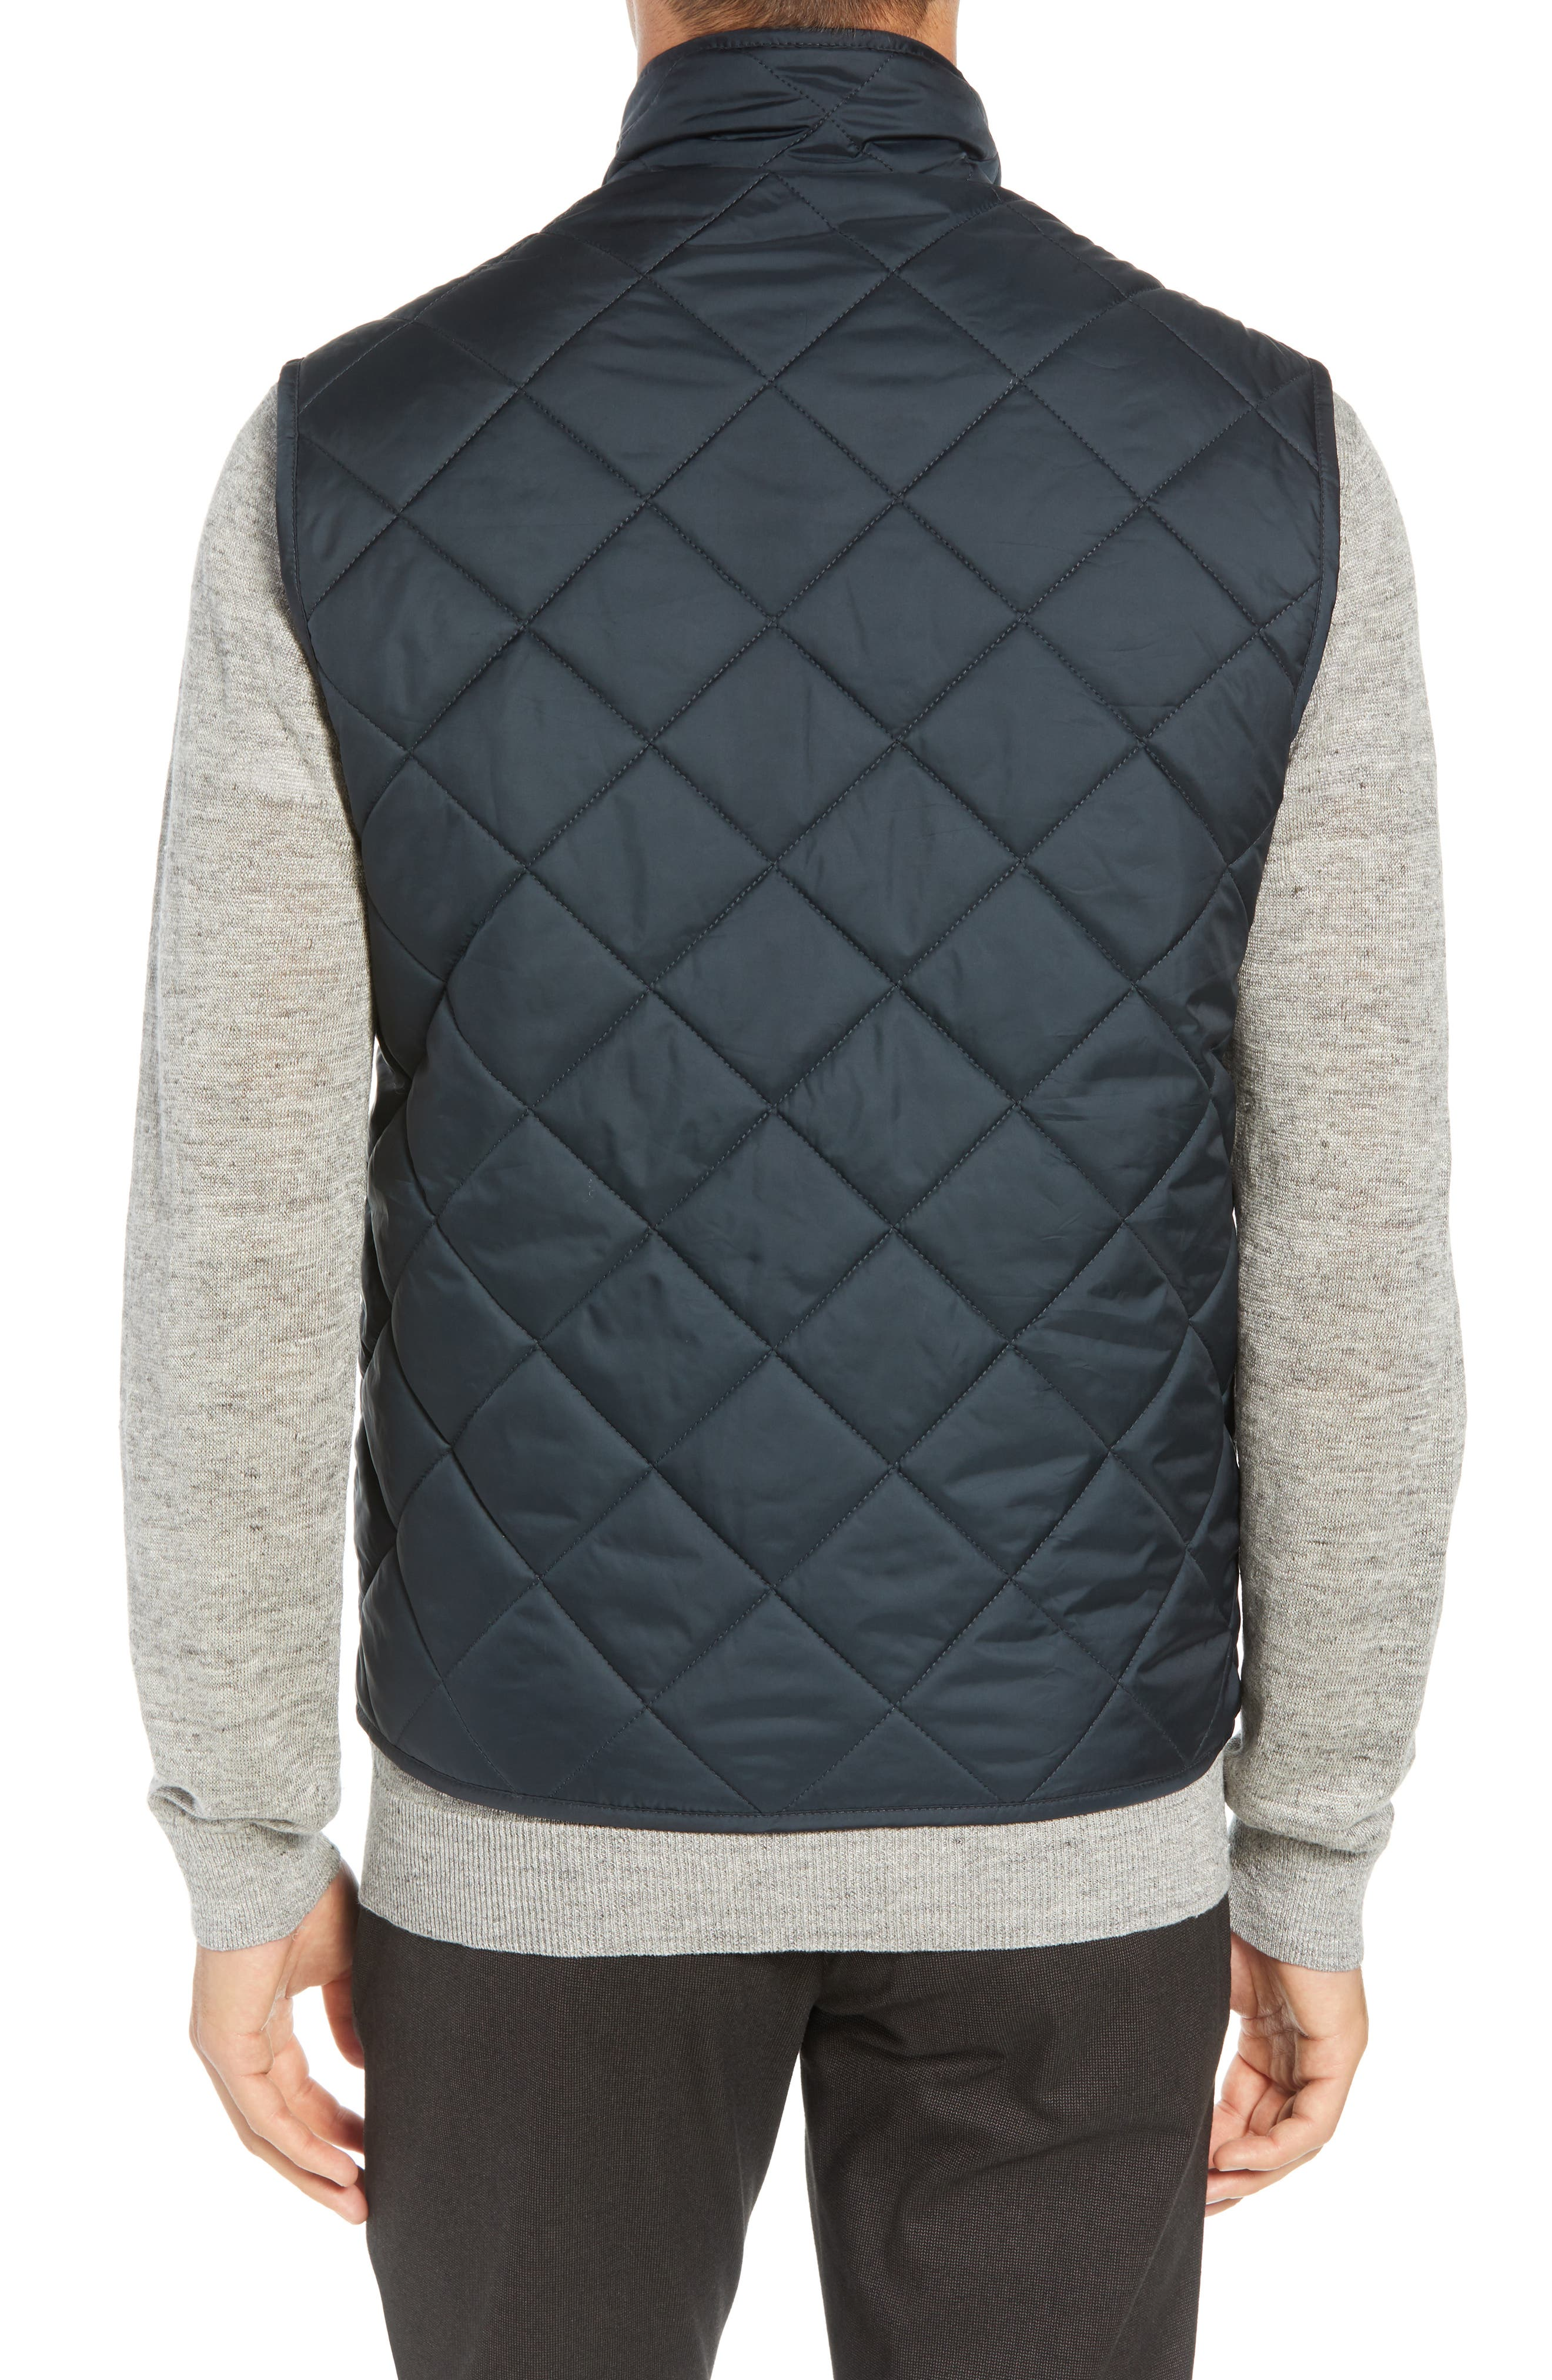 MARC NEW YORK, Chester Packable Quilted Vest, Alternate thumbnail 2, color, BLACK